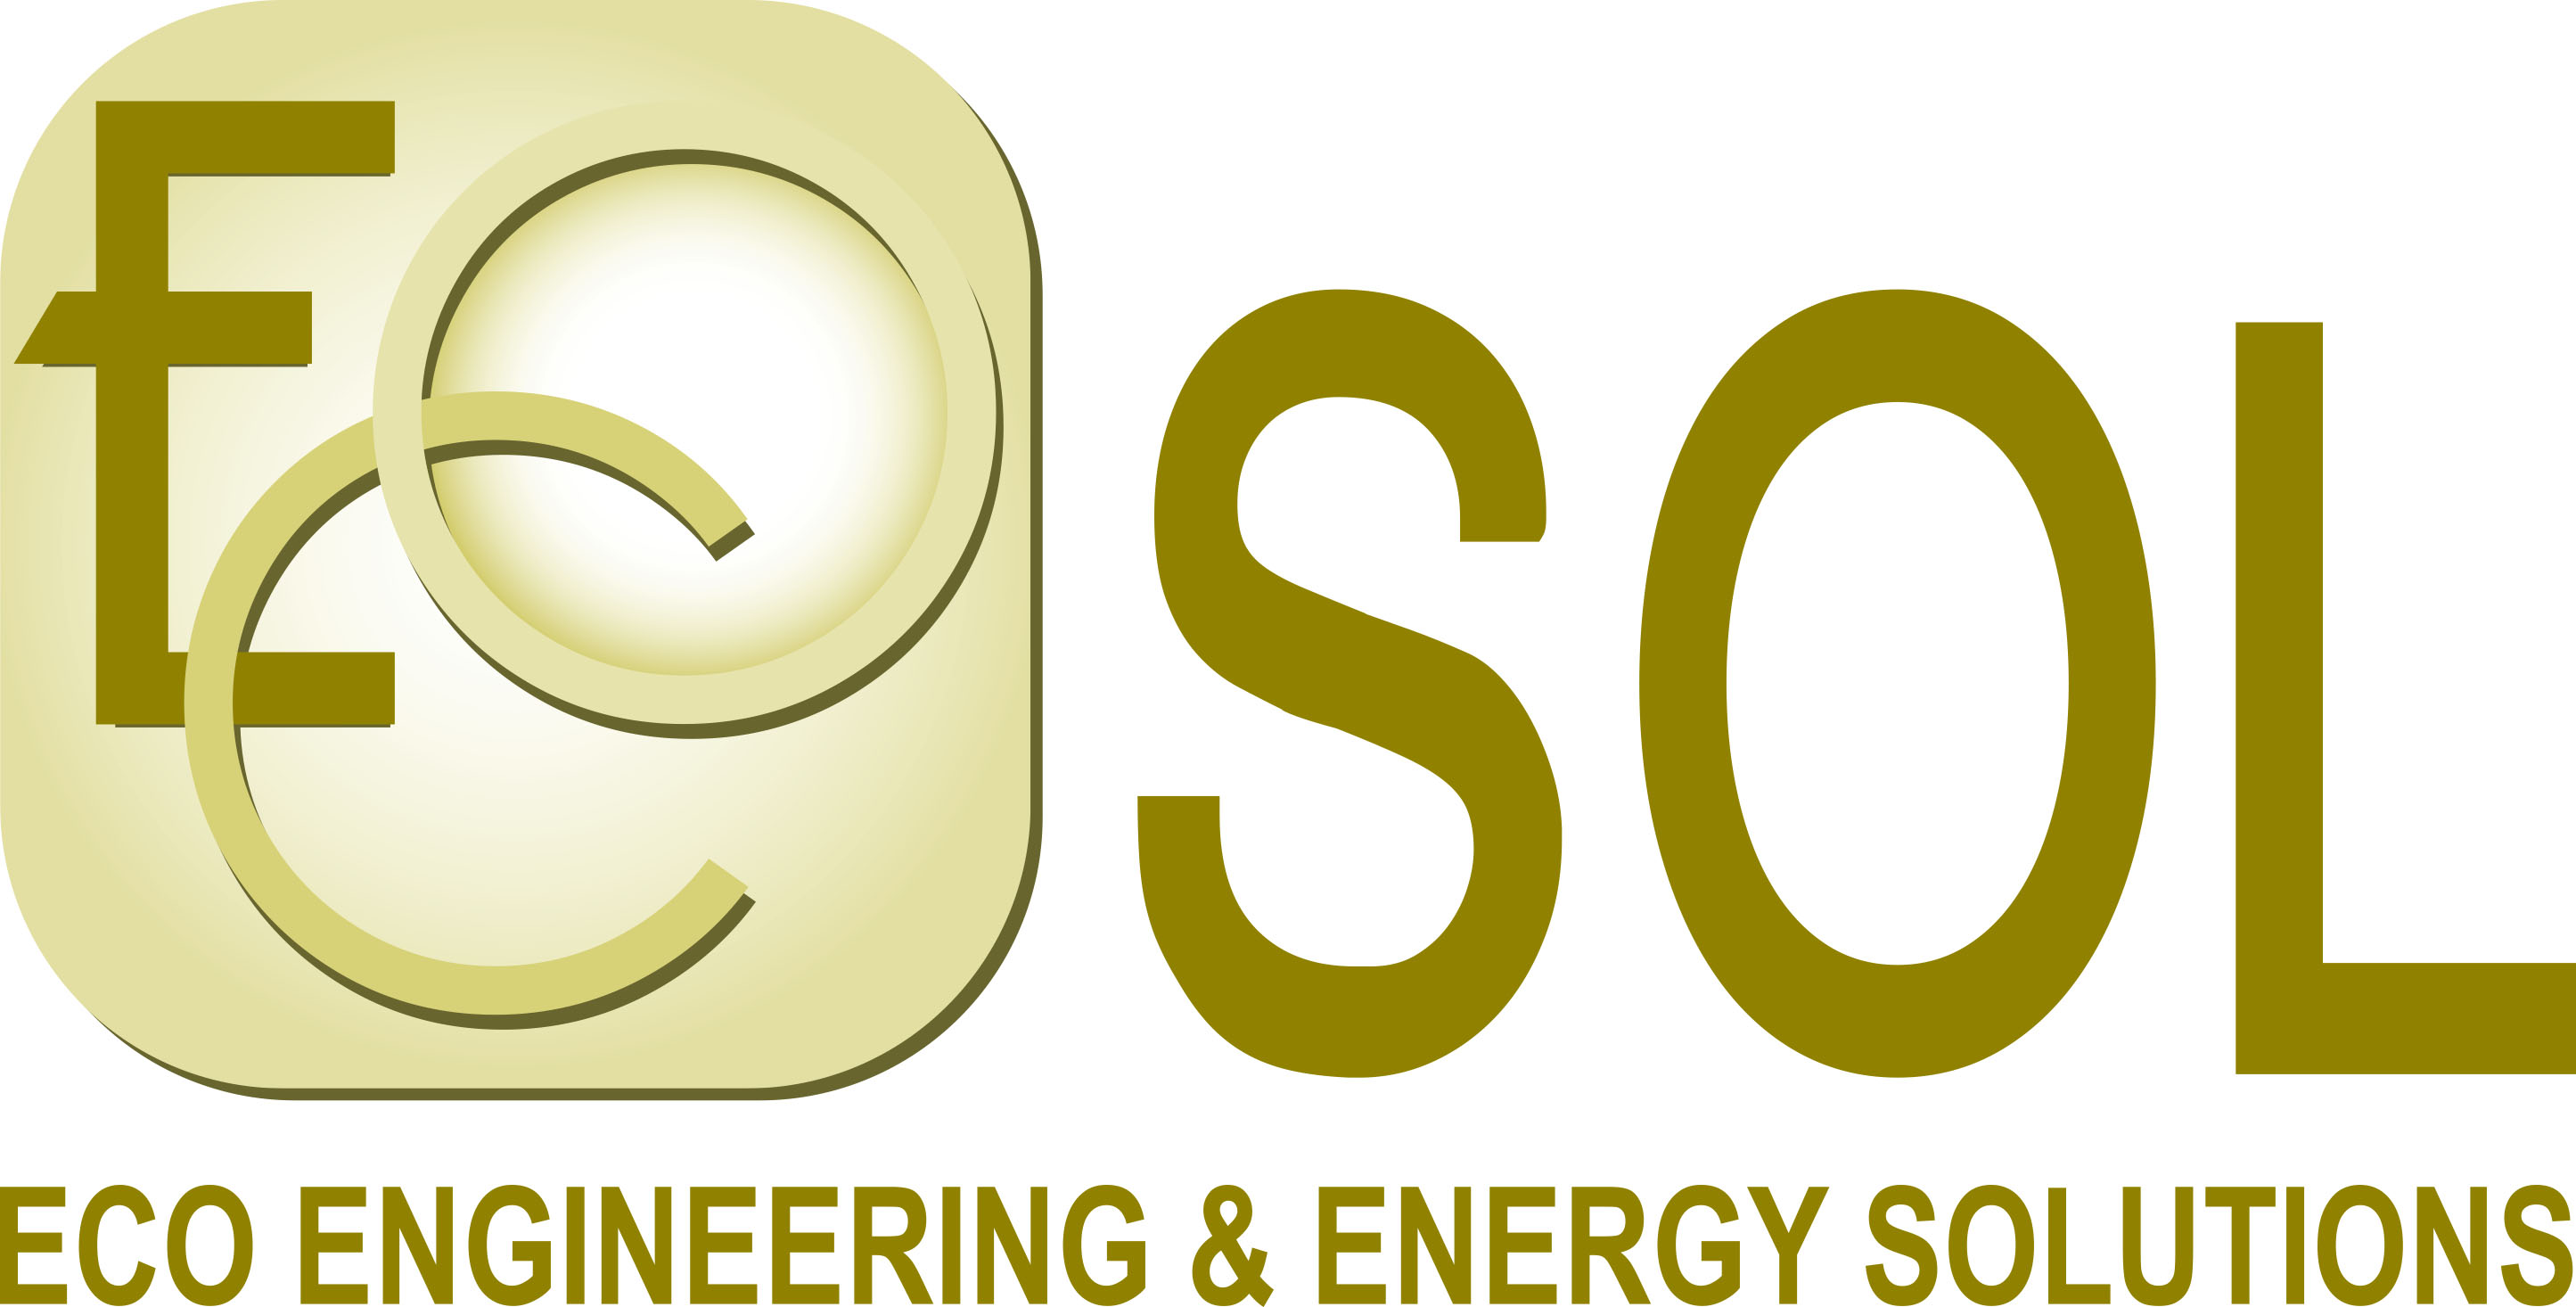 Eco Engineering and Energy Solutions (ECO SOL)